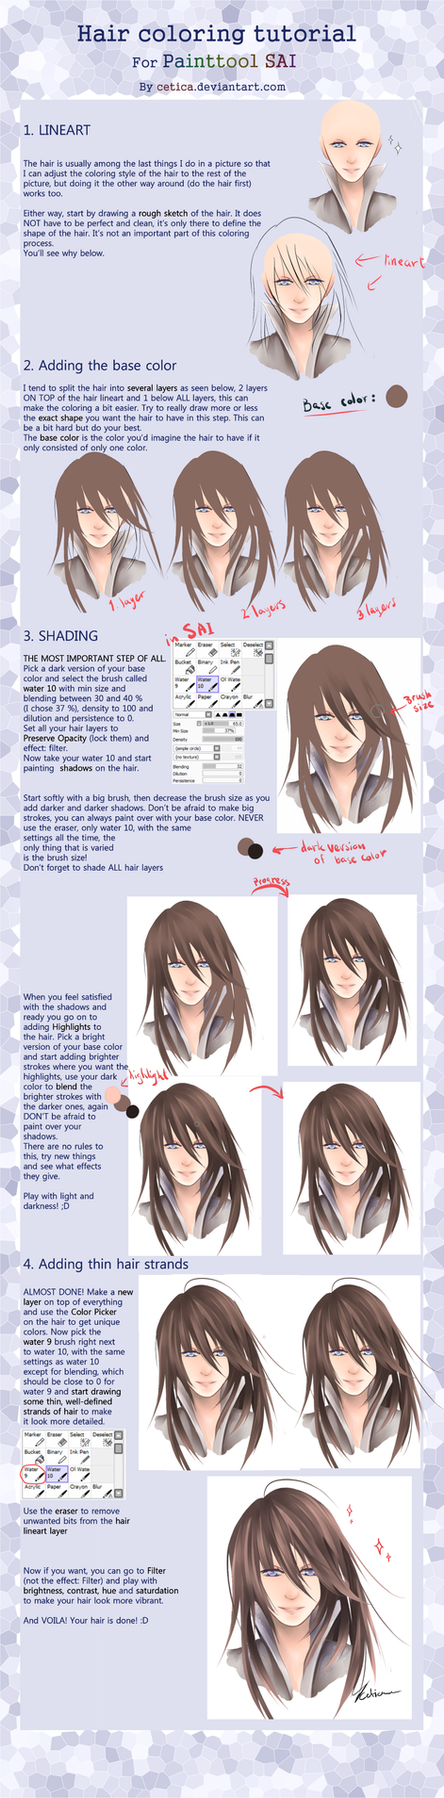 hair coloring tutorial for paint tool sai by circet on deviantart coloring on surface pro coloring on canvas